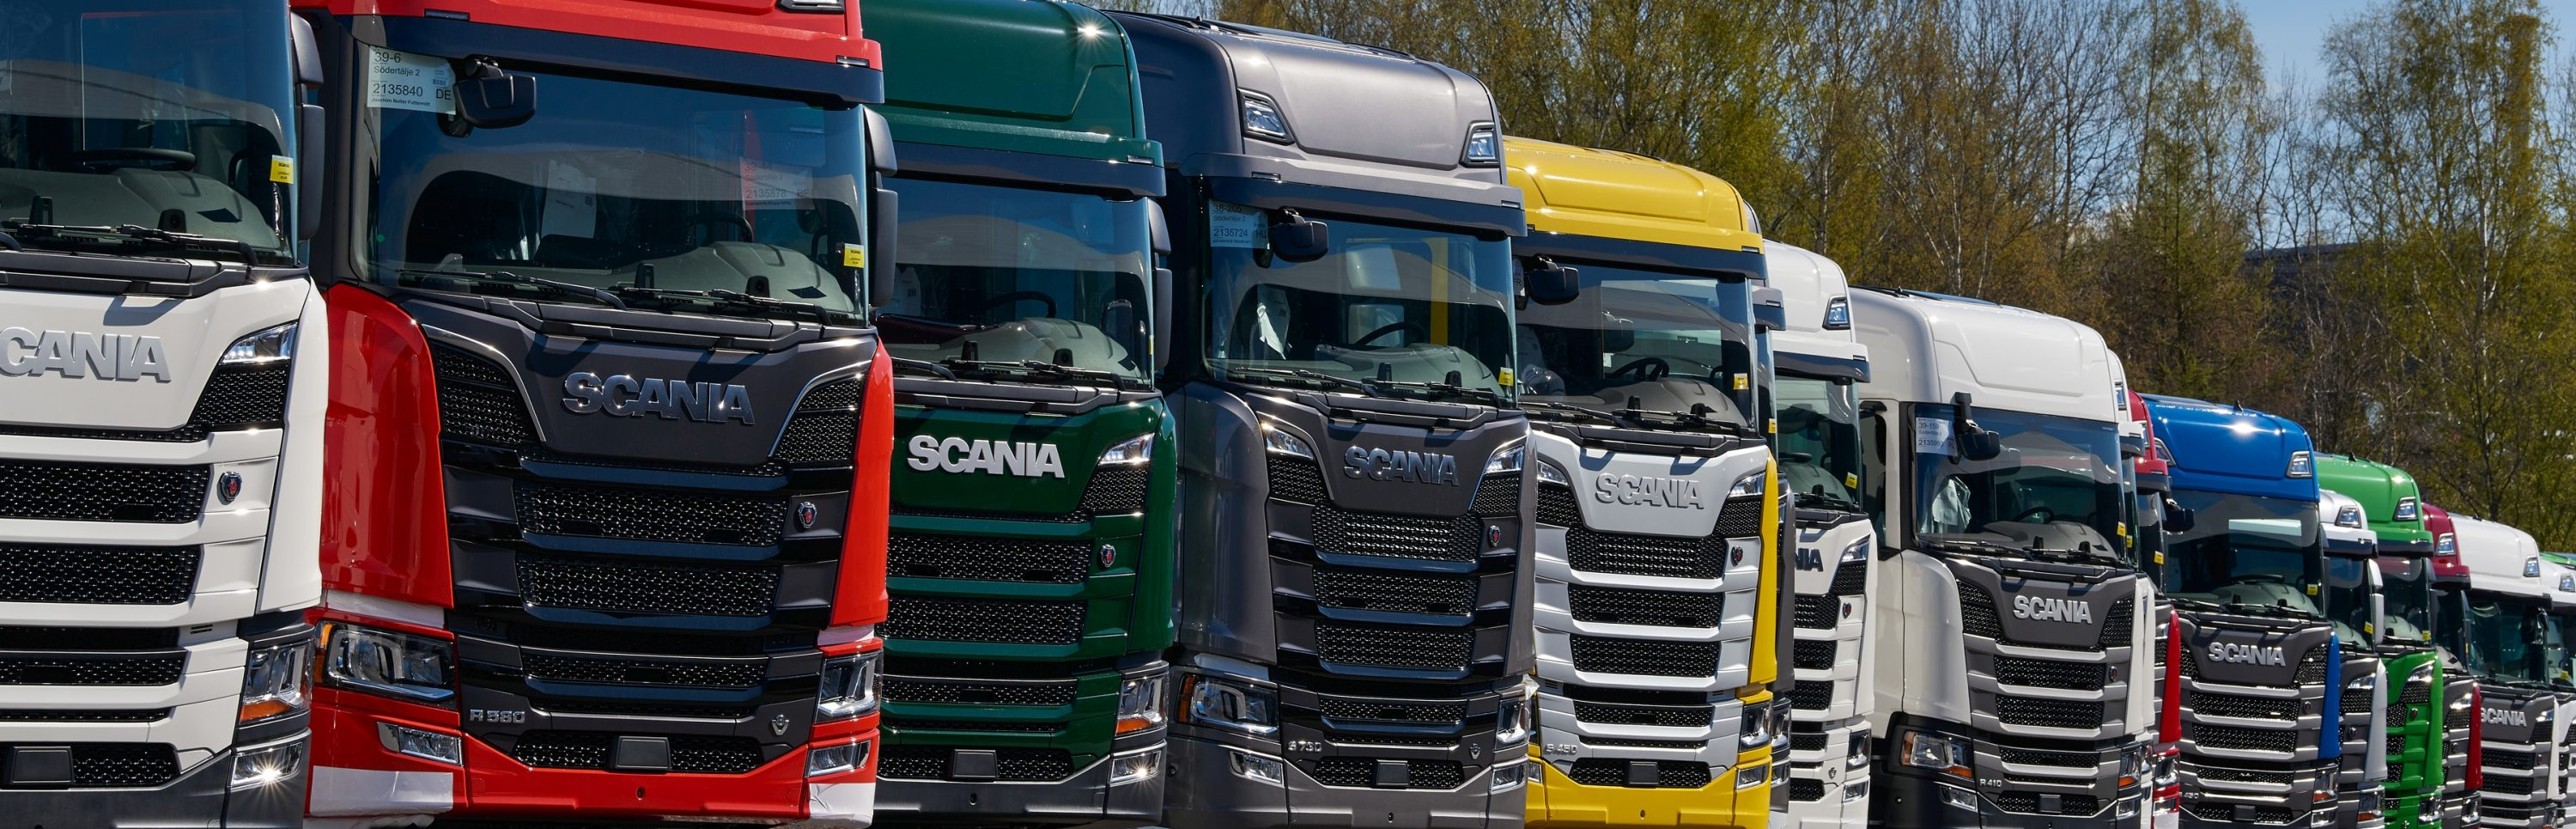 Scania trucks ready for delivery.